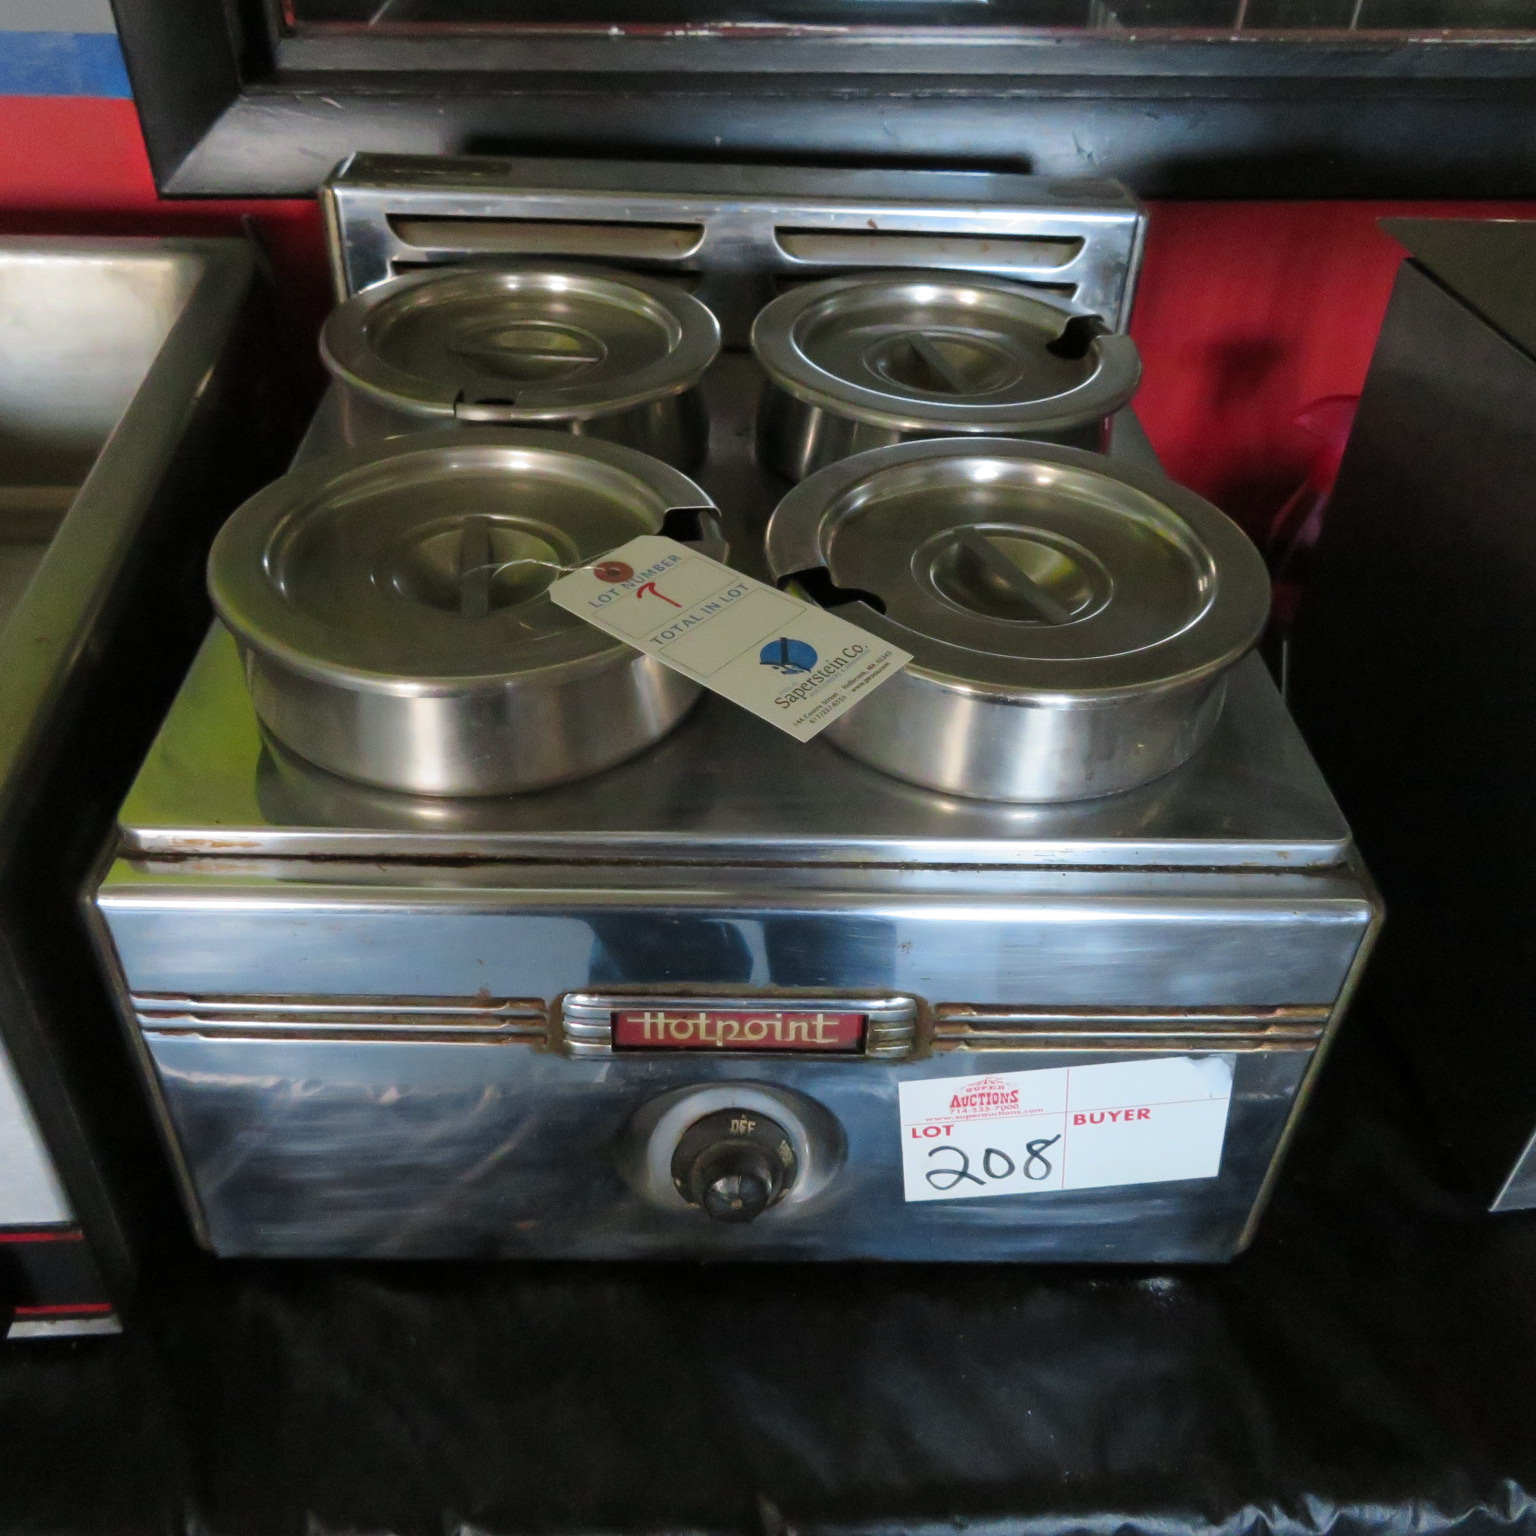 Hot Point Electric Counter Top Soup Warmer